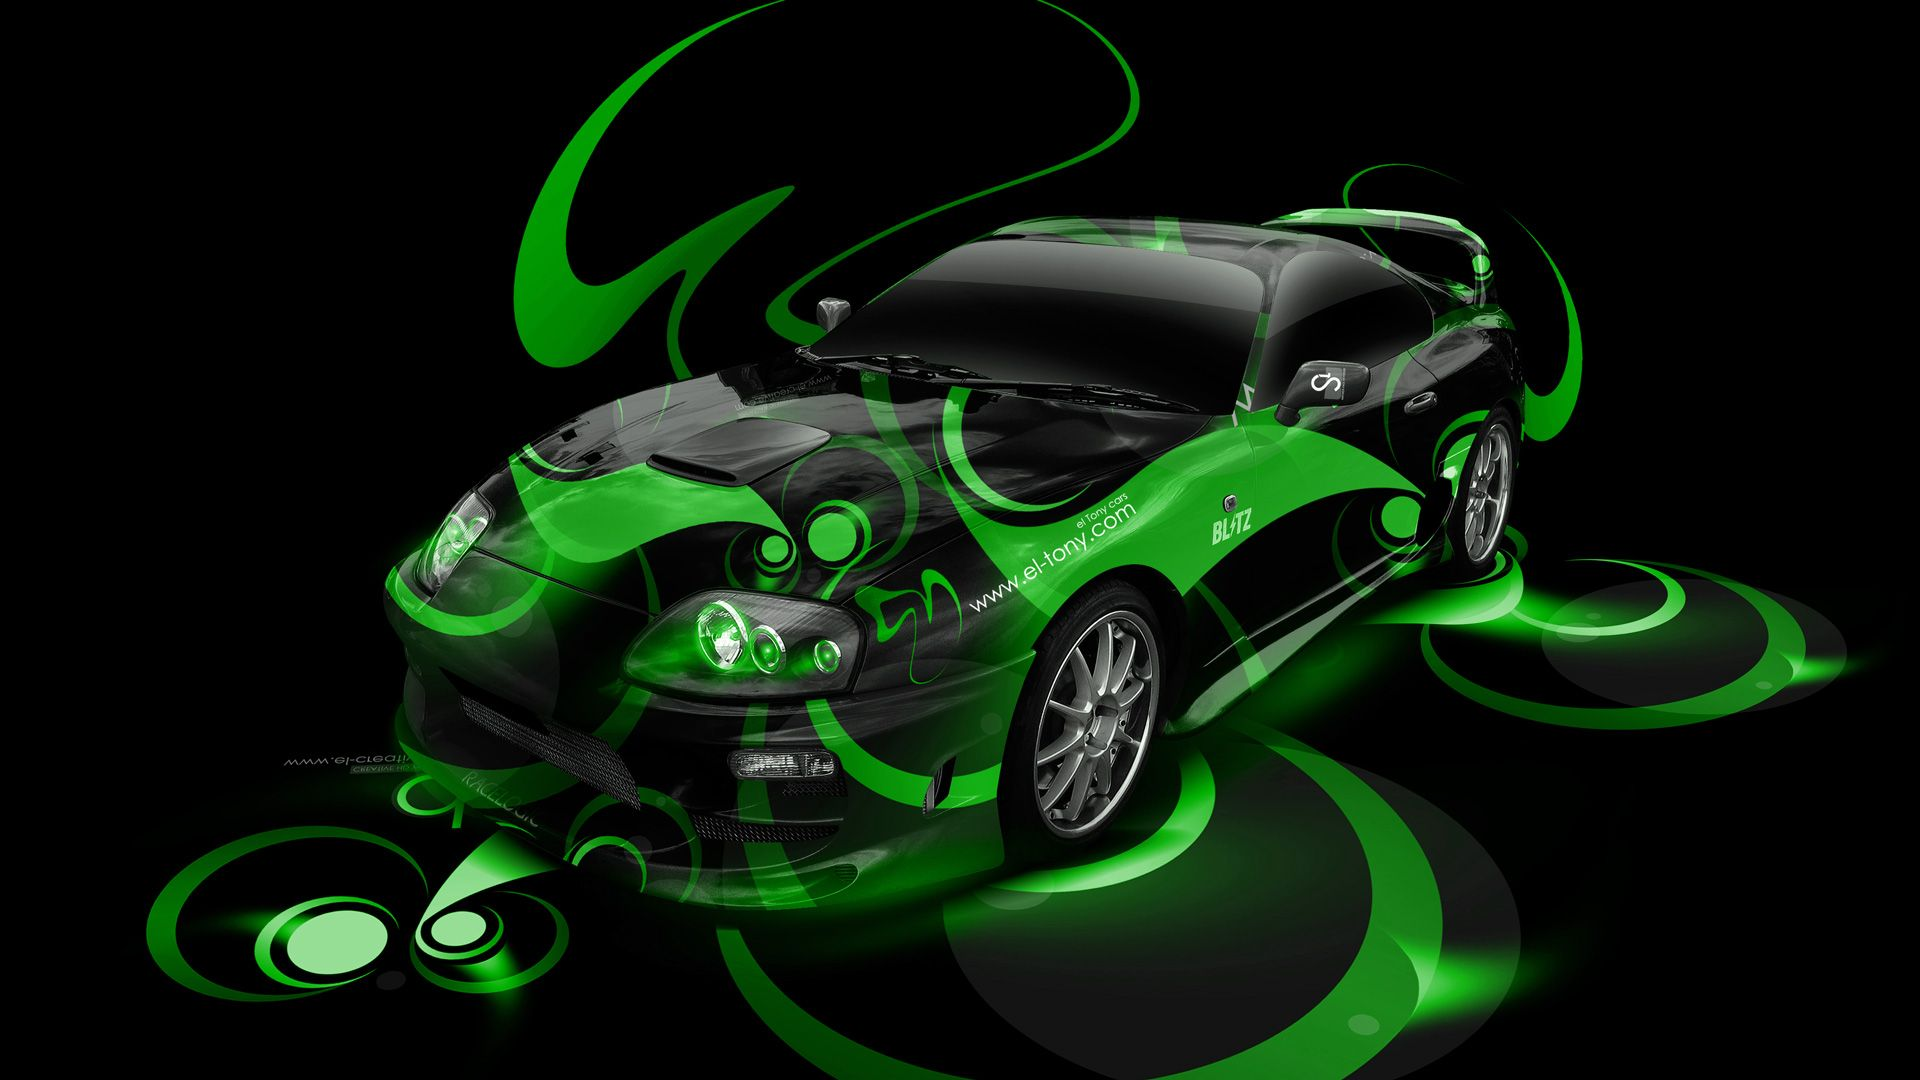 Beau Toyota Supra JDM Super Abstract Car 2014 Green